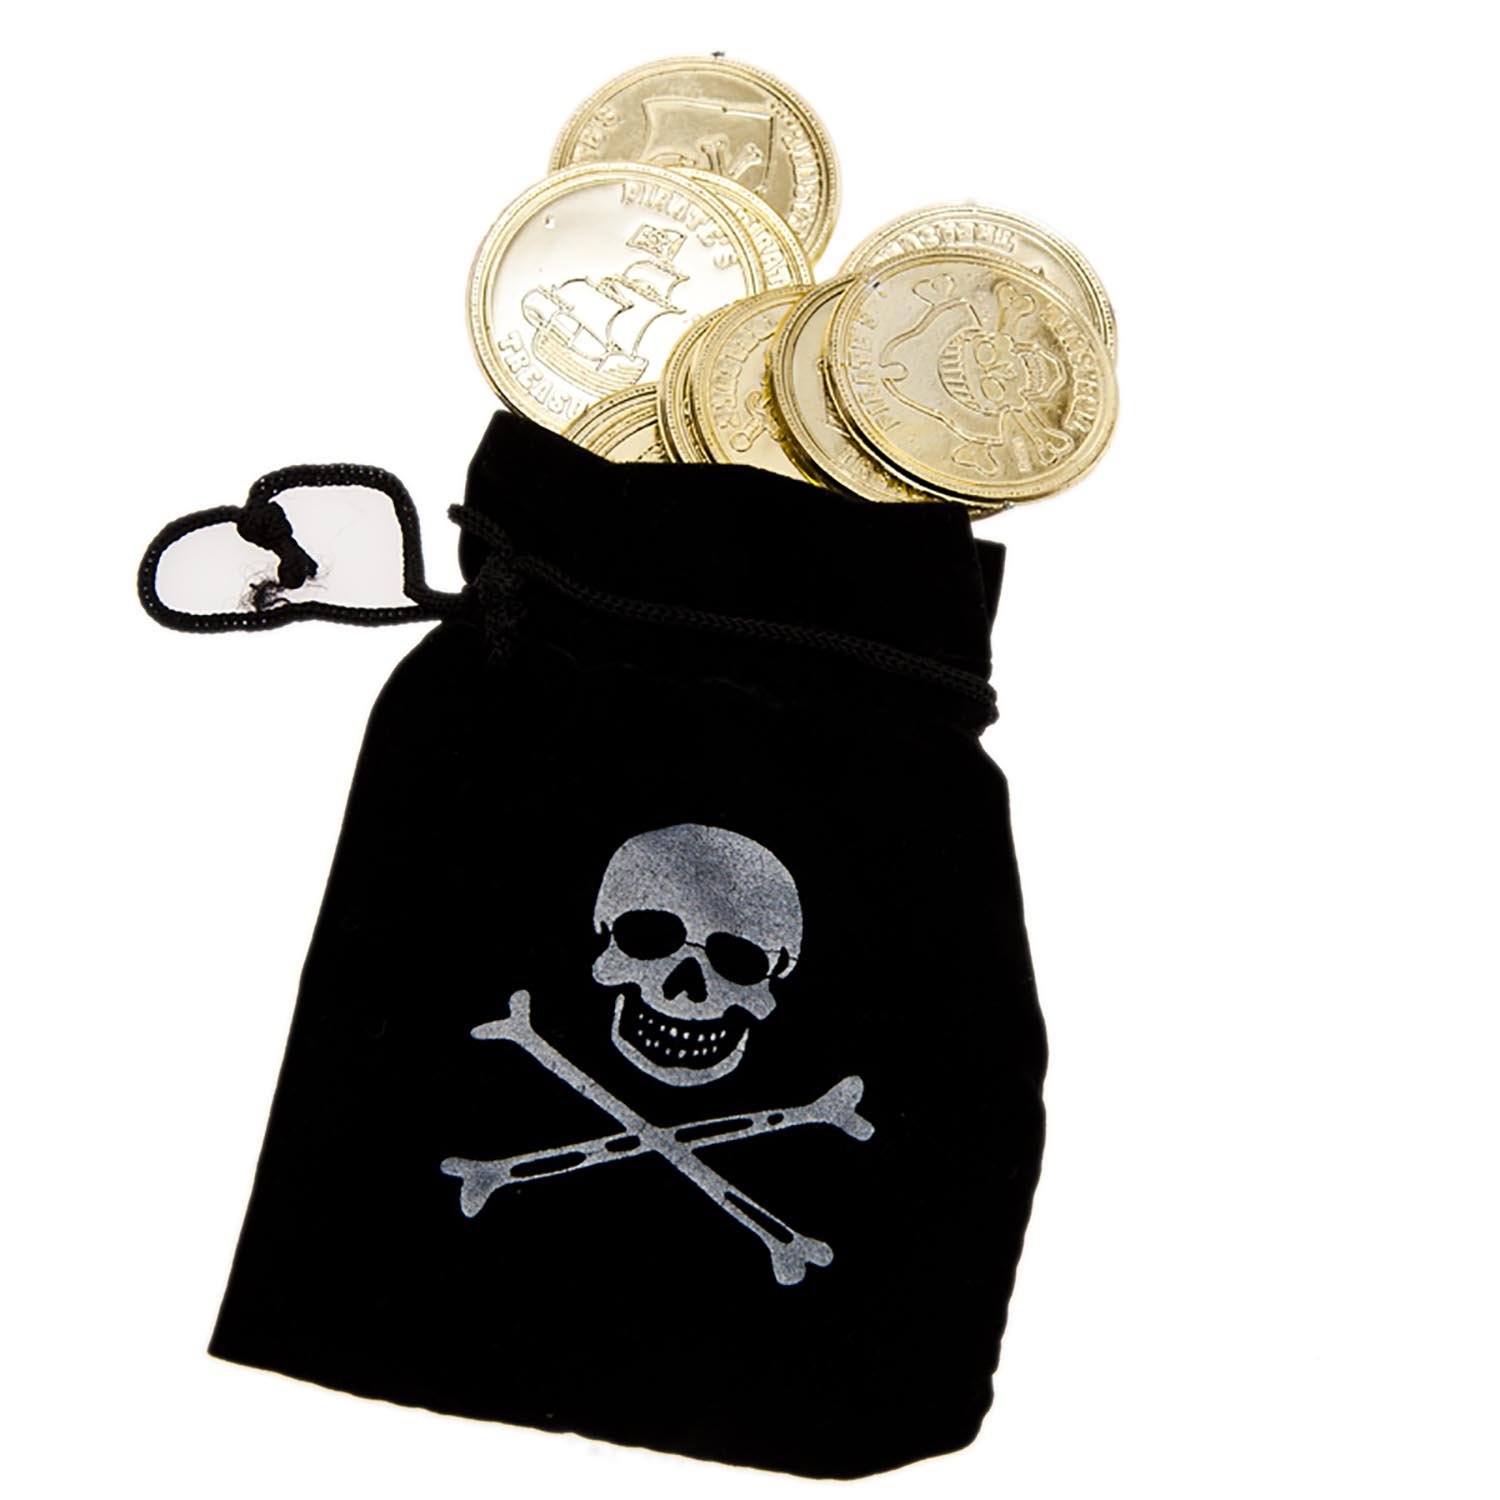 Pirate Drawstring Bag & Coins